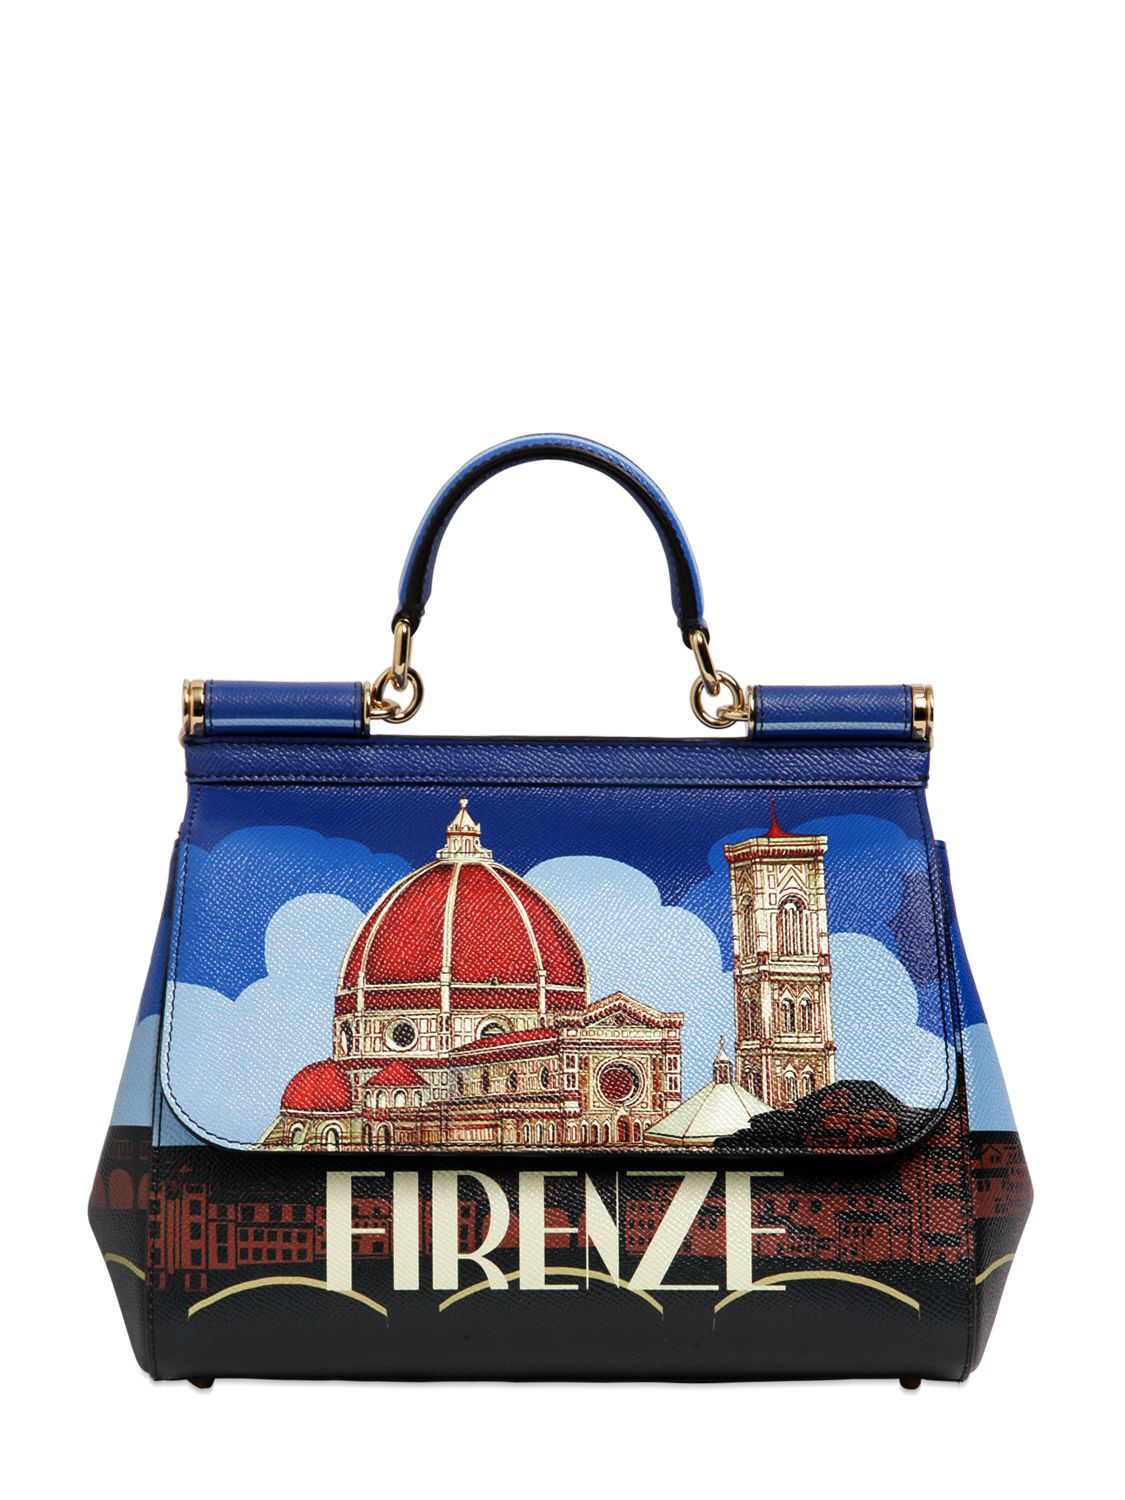 be8bec16aa Lyst - Dolce   Gabbana Sicily Firenze Printed Leather Bag in Blue